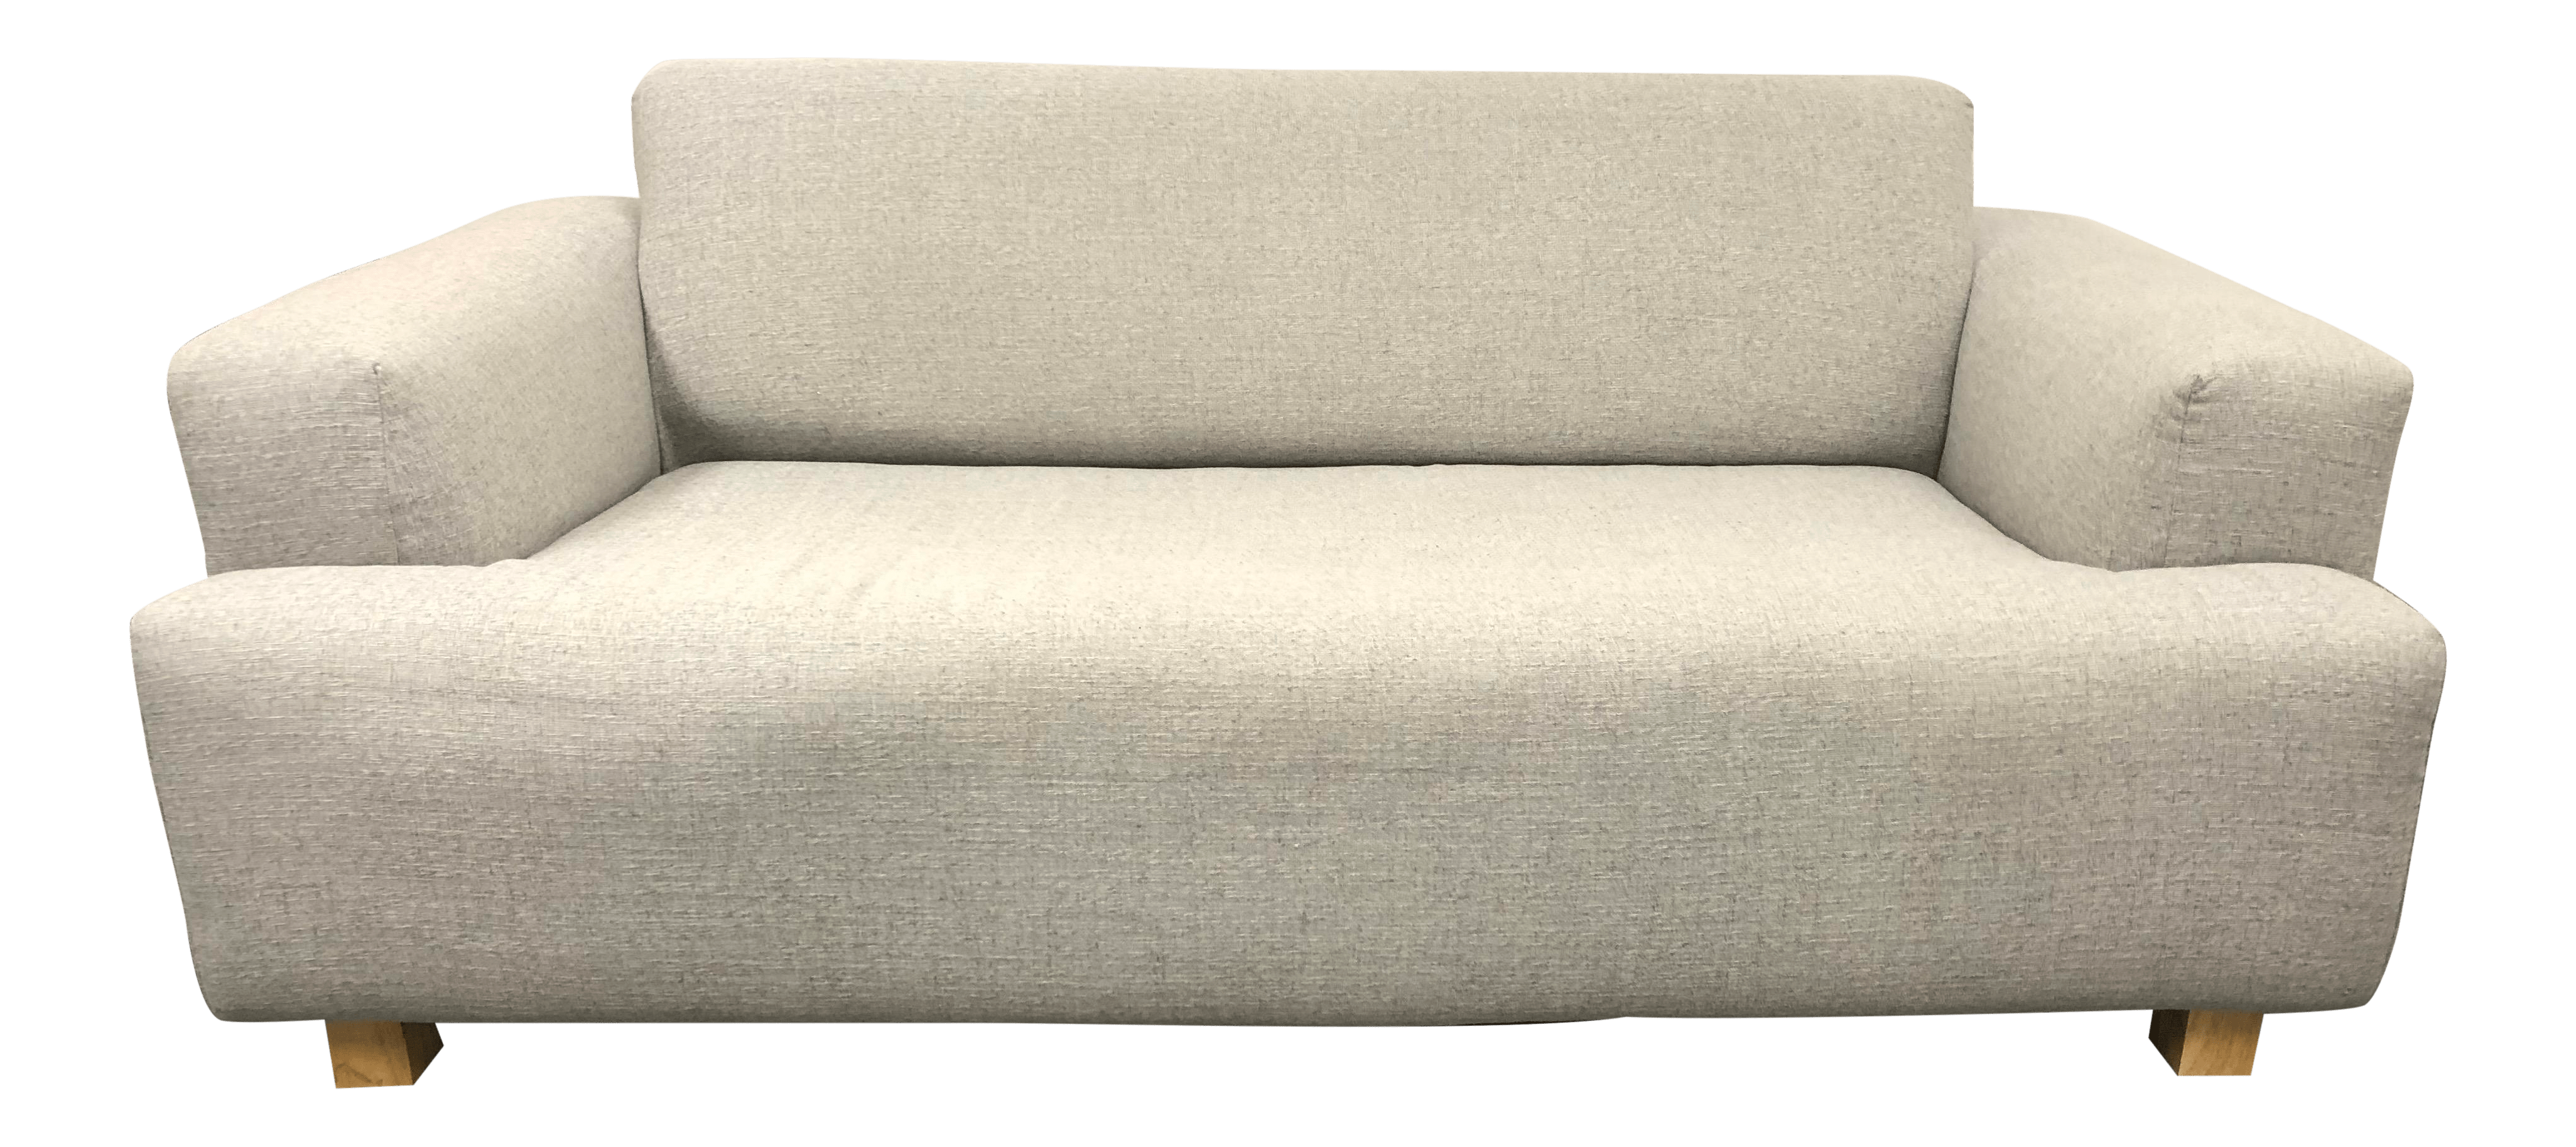 urban sofa gallery kirby vacuum outfitters delancy chairish for sale